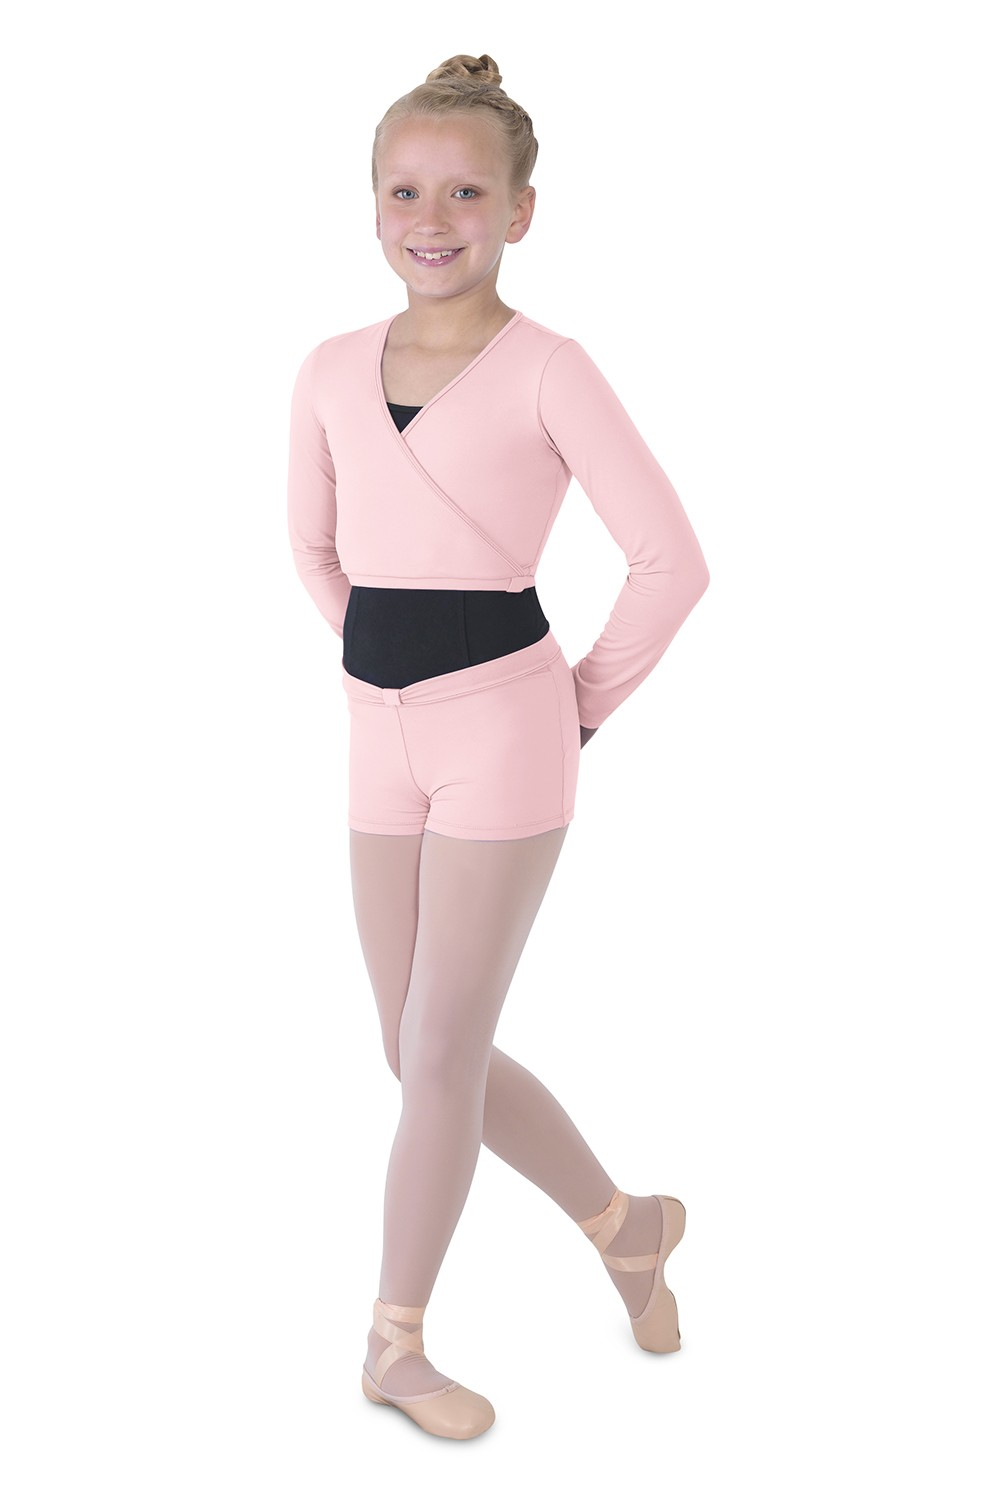 Short W/frt Loop Children's Dance Shorts